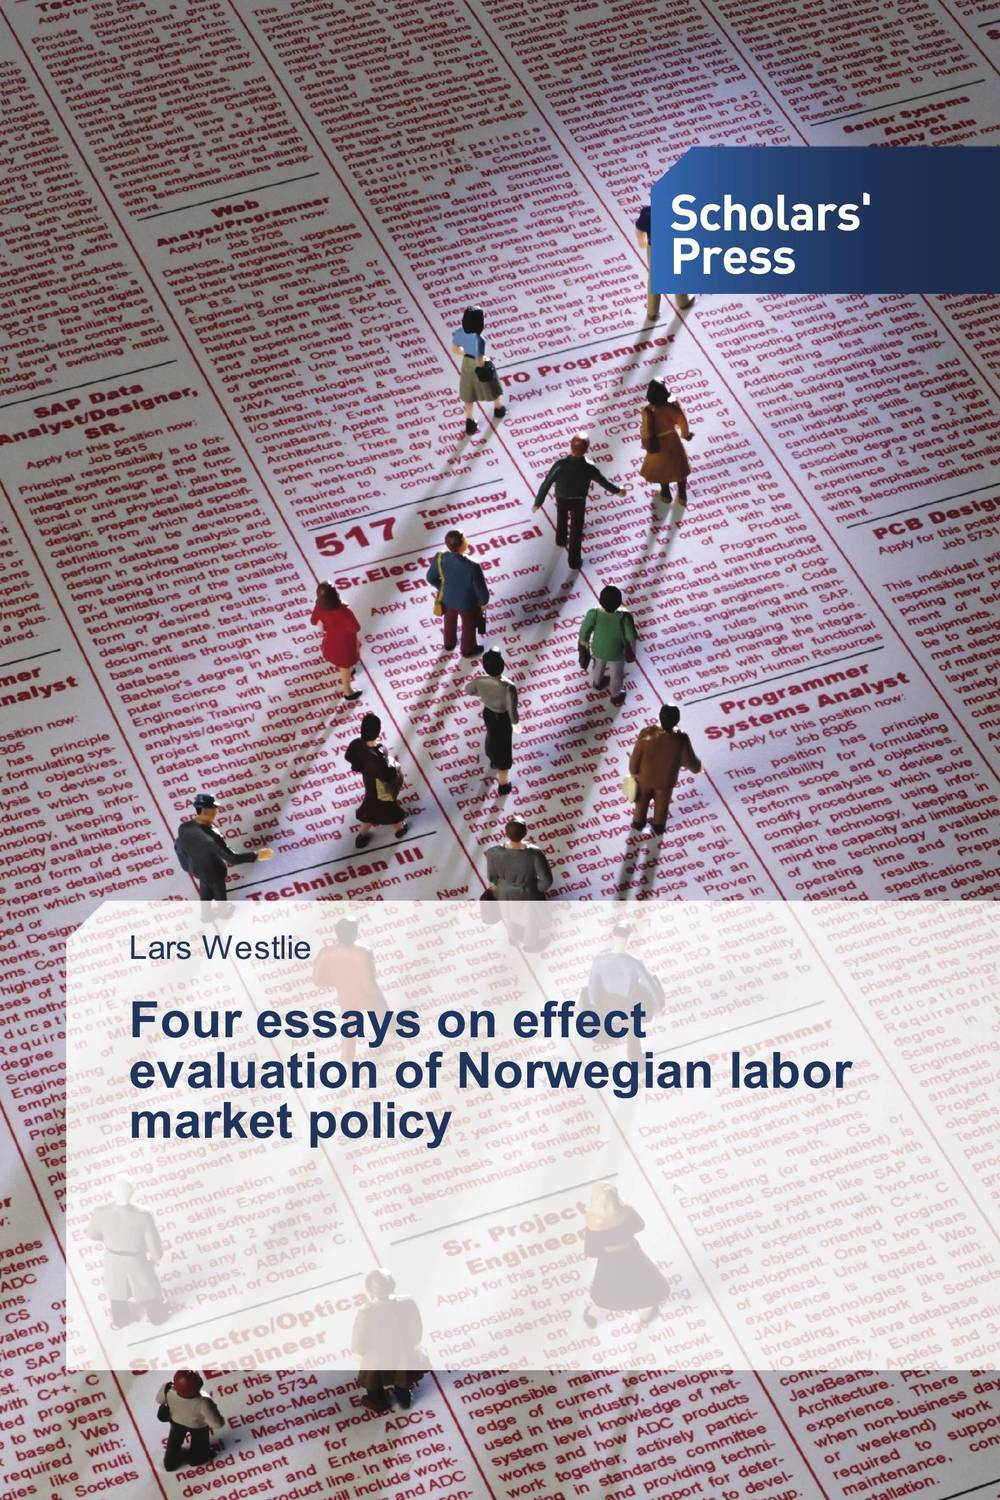 Four essays on effect evaluation of Norwegian labor market policy